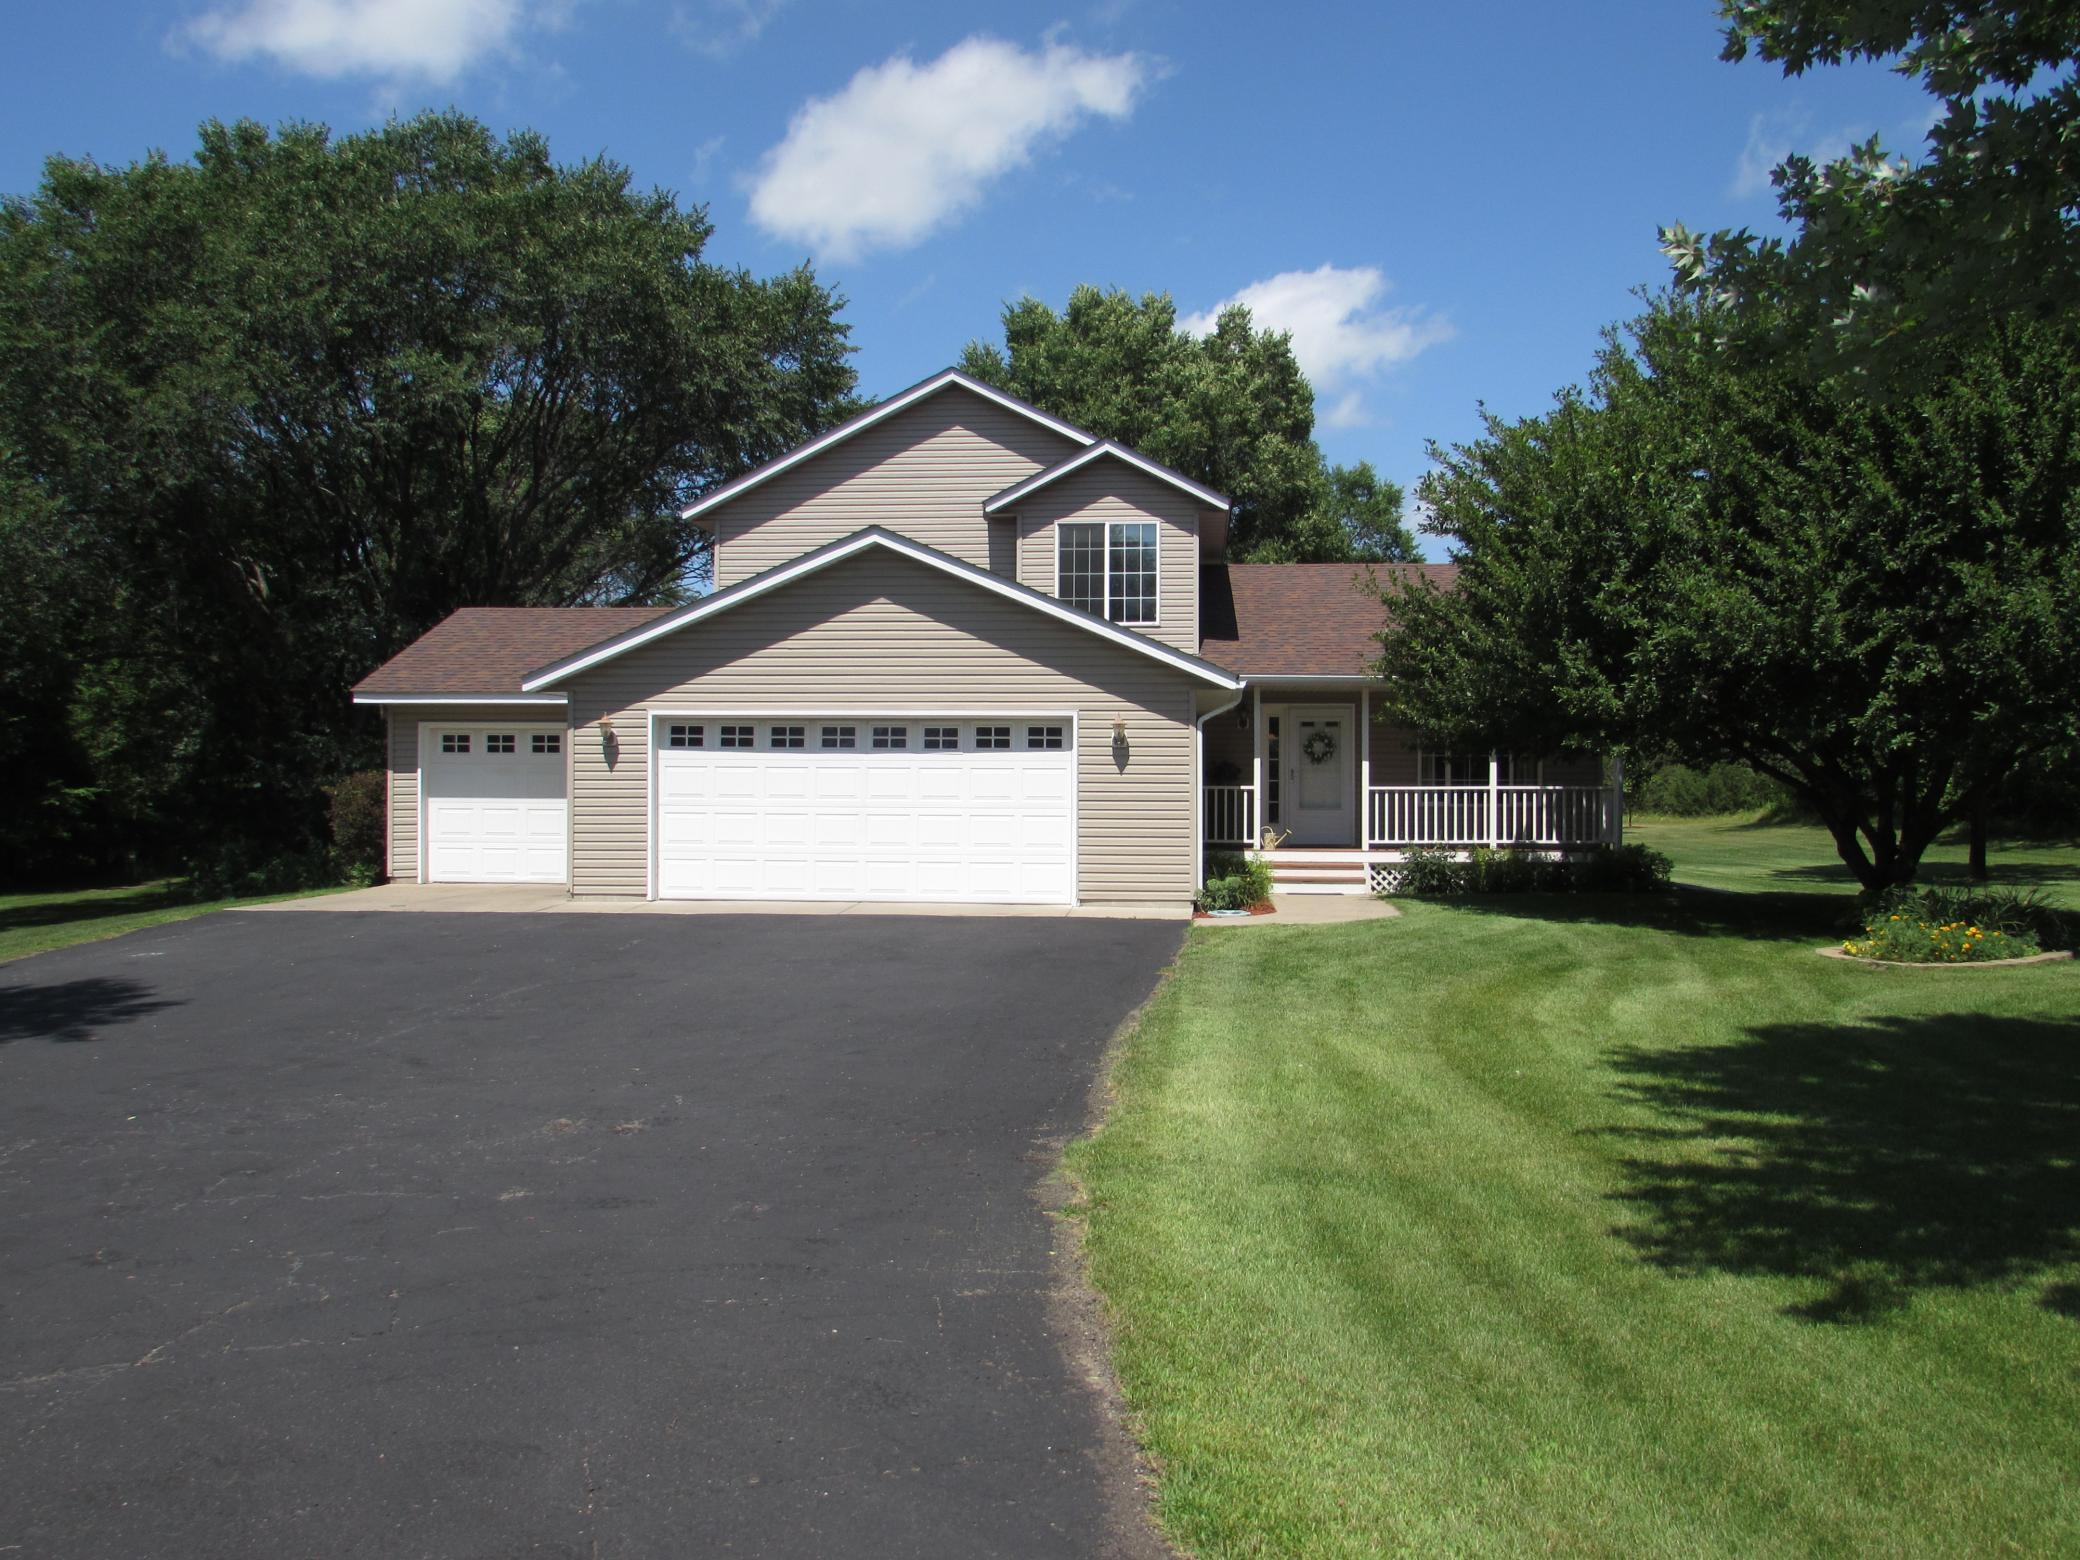 13272 91st Street Property Photo - Becker, MN real estate listing